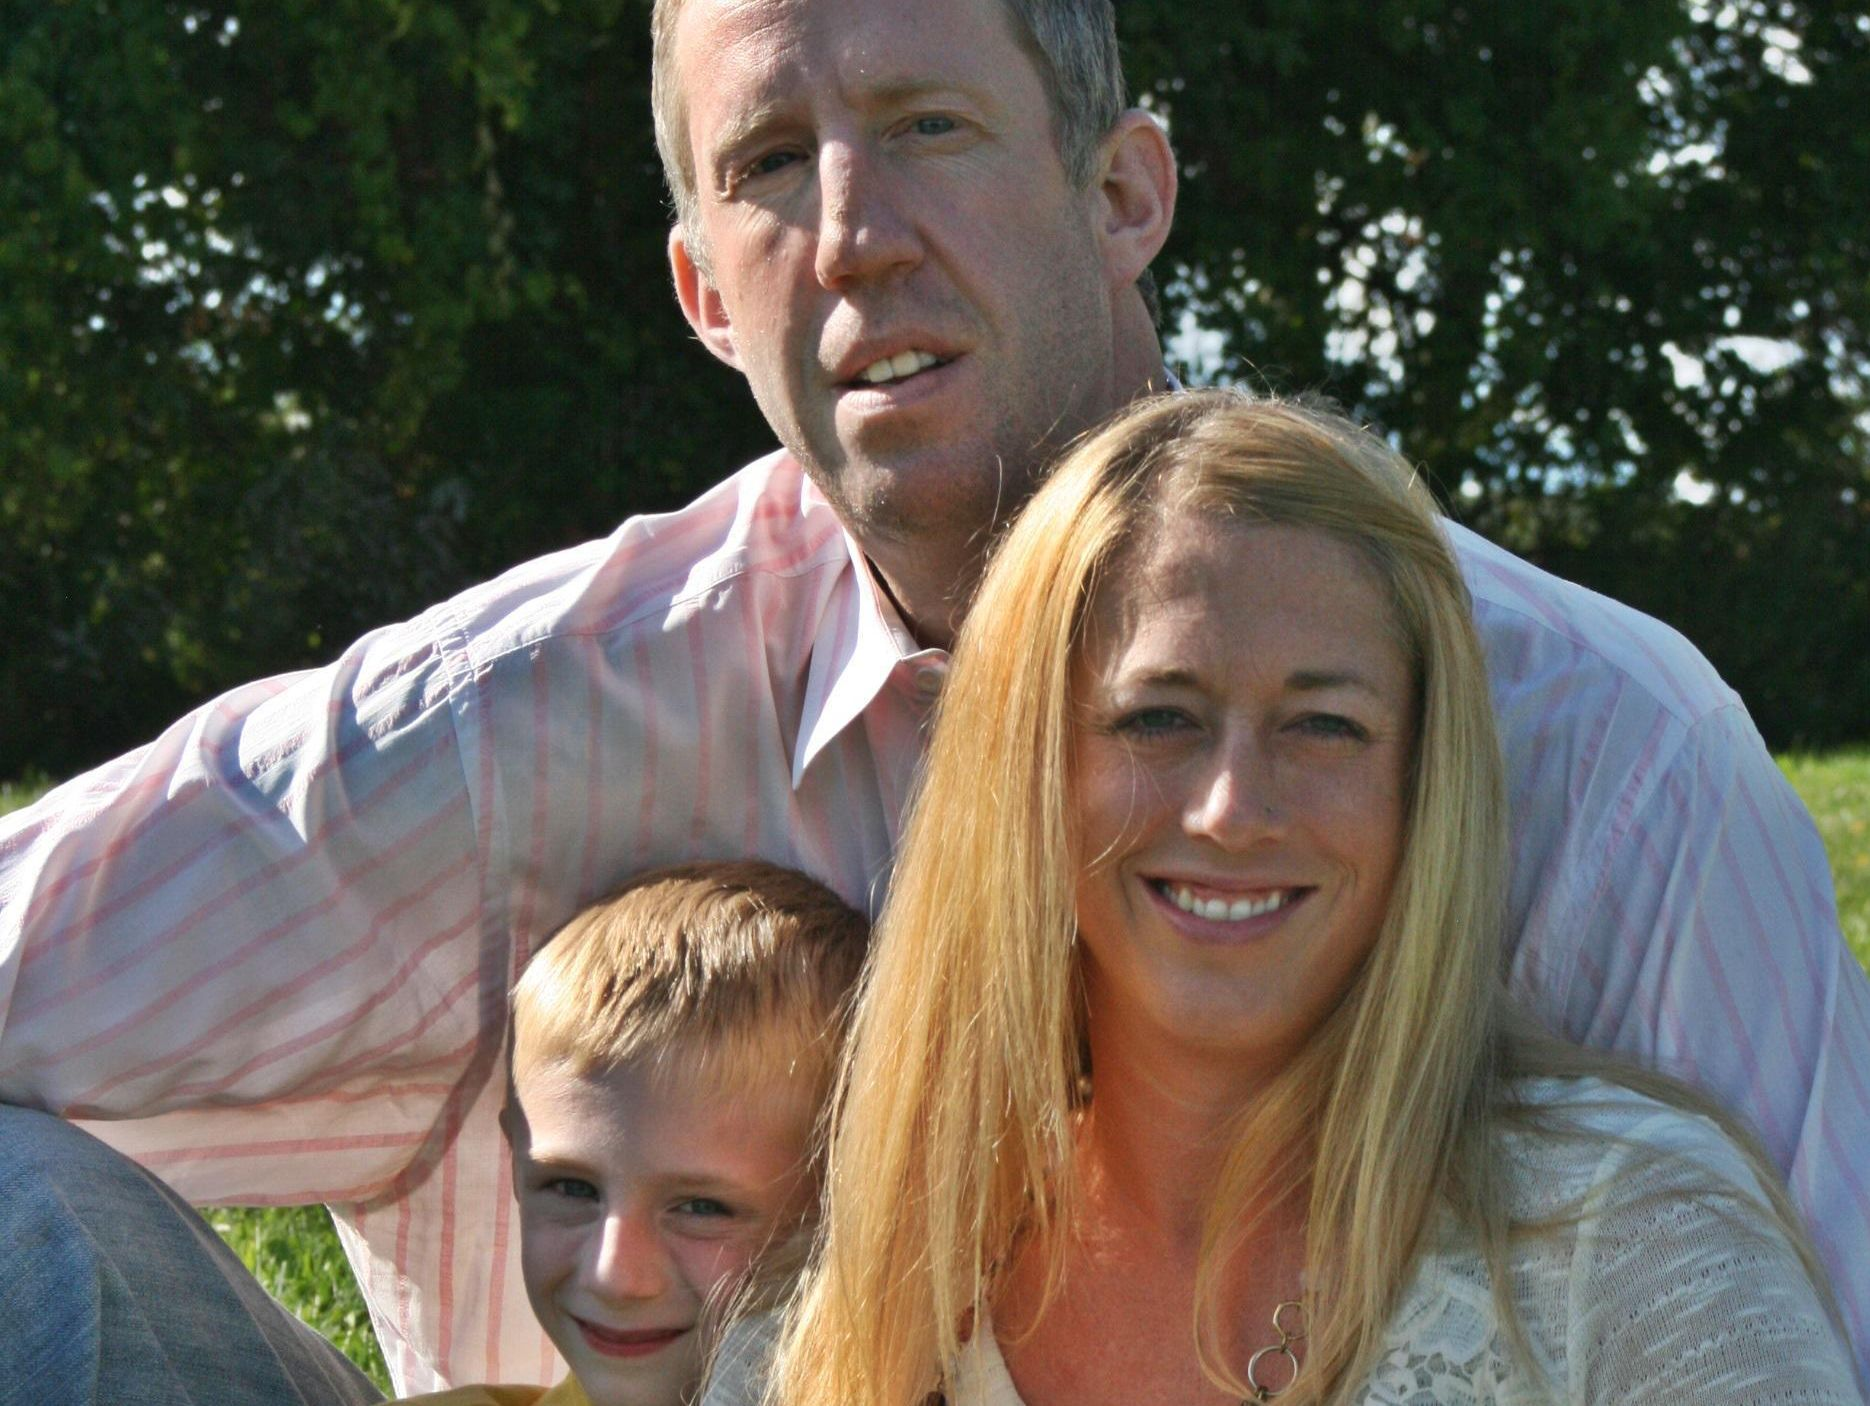 Nate Huffman with his wife, Michelle, and his son, Christian. Huffman, a Lakeview graduate who played in the NBA, died of cancer in October of 2015.